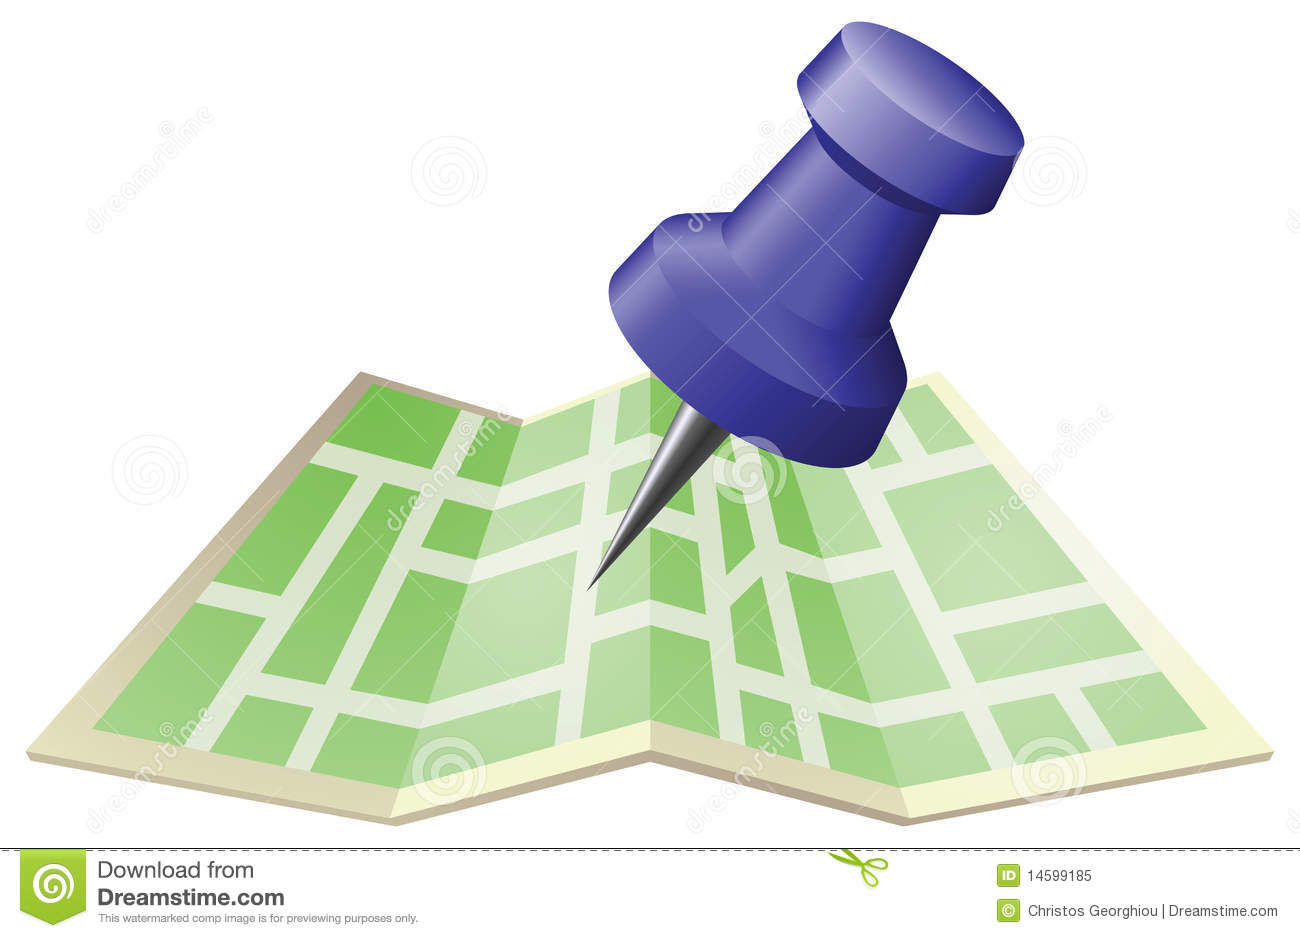 Old paris street map royalty free stock photo image 15885665 - Illustration Of A Street Map With Drawing Push Pin Royalty Free Stock Photo